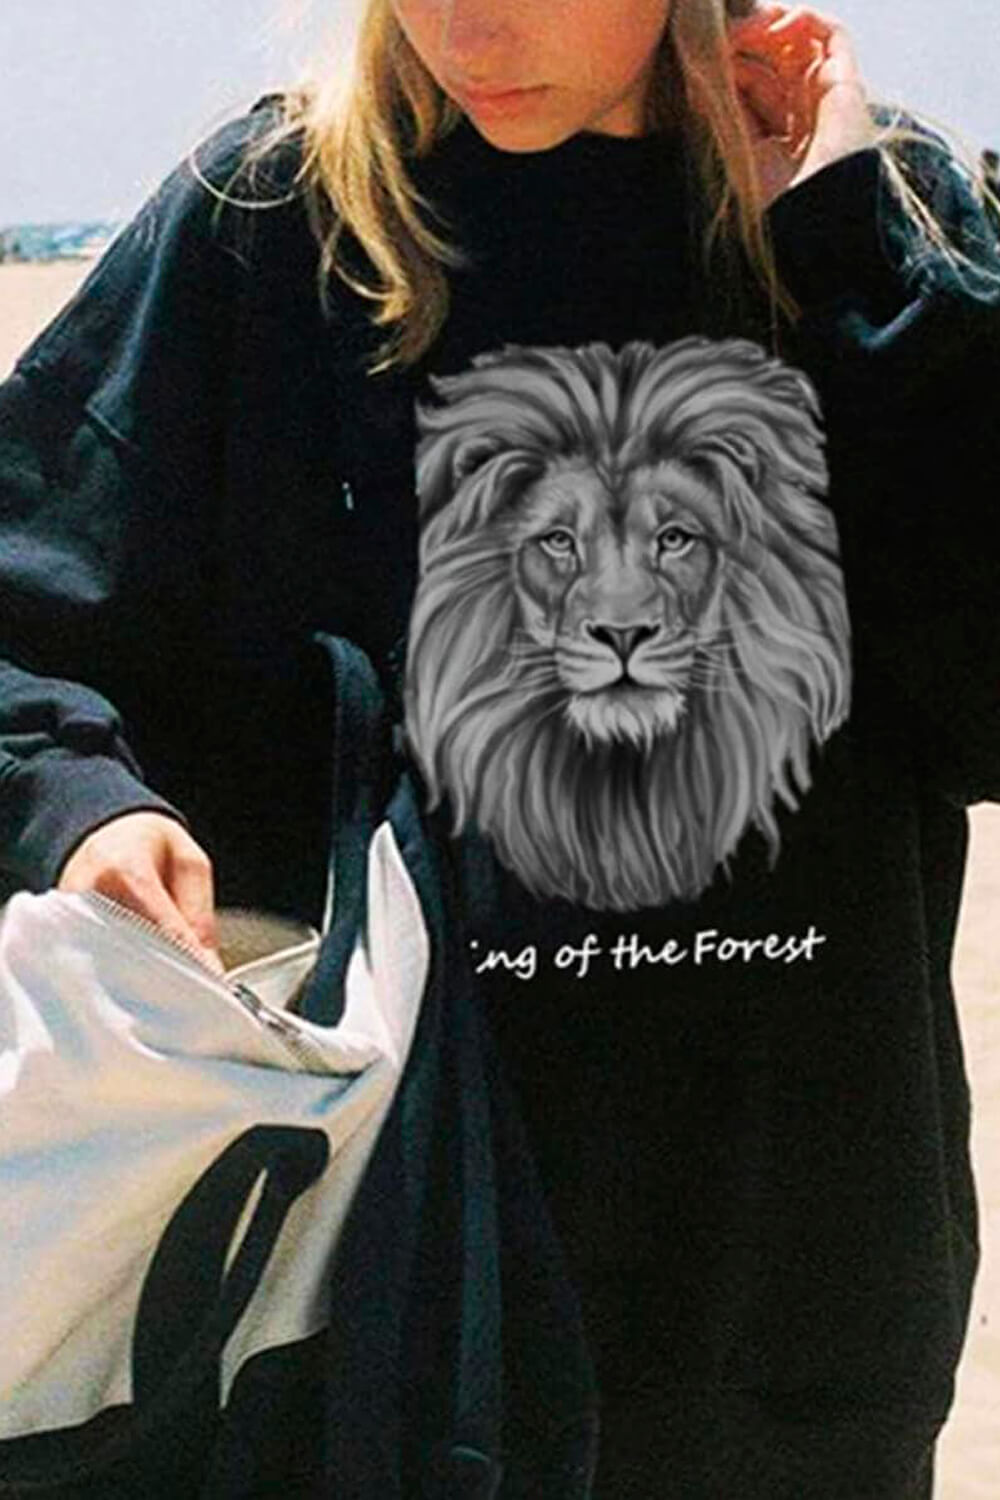 Lion King of the Forest Sweatshirt